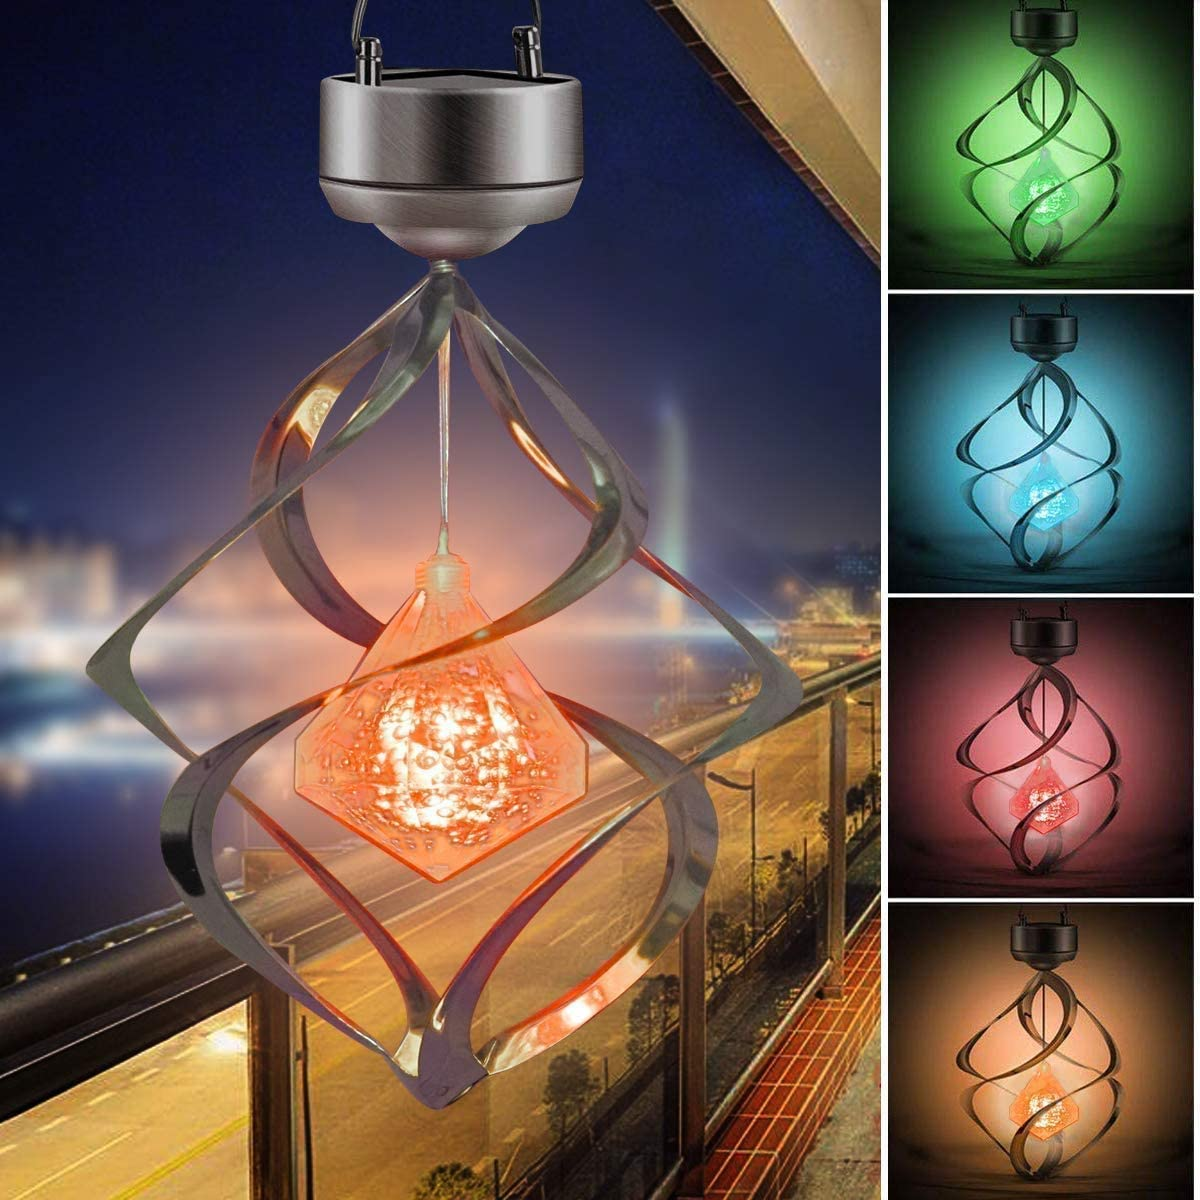 AMWGIMI Solar Lights Outdoor Christmas Yard Decoration Wind Chimes for Outdoor Indoor Colorful Gift for Garden, Patio, Balcony Decor